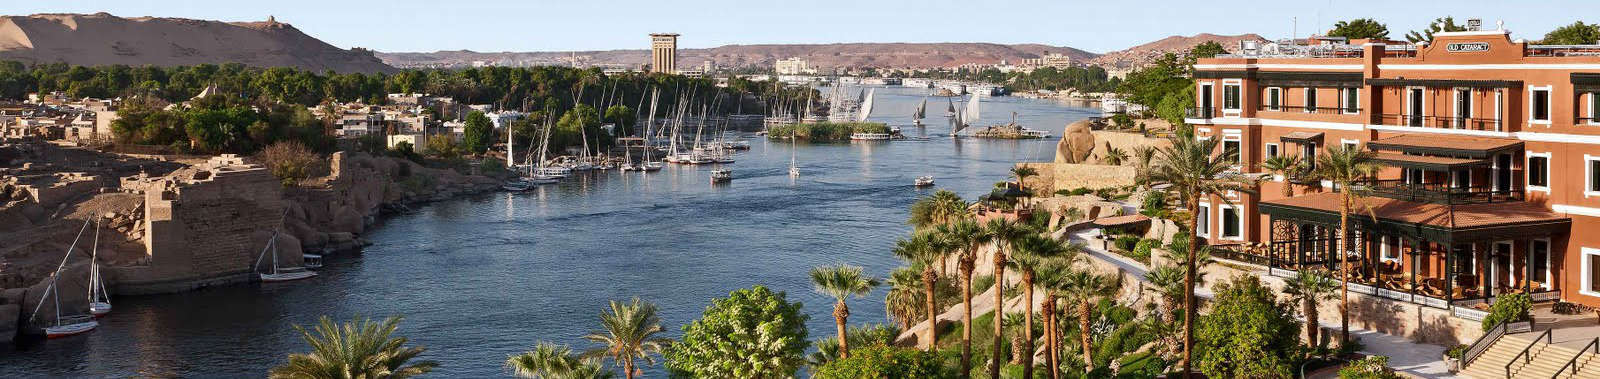 182134-sofitel-legend-old-cataract-aswan-low-res-754012